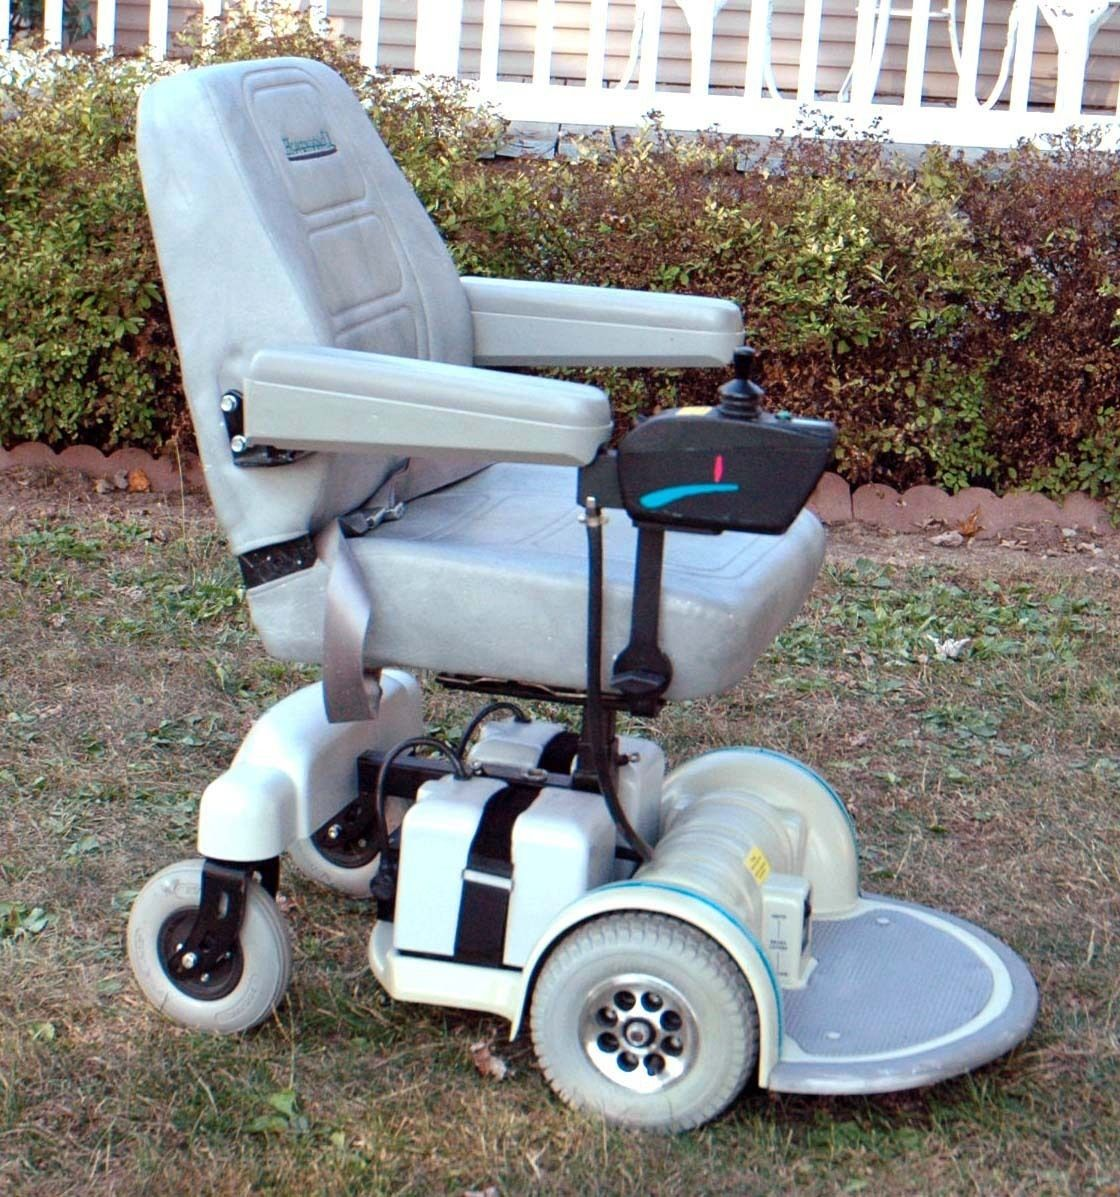 Hoveround Wiring Diagram Shoprider Panasonic Electric Mobility Rascal Scooter Power Chair Mpv4 Good Used On